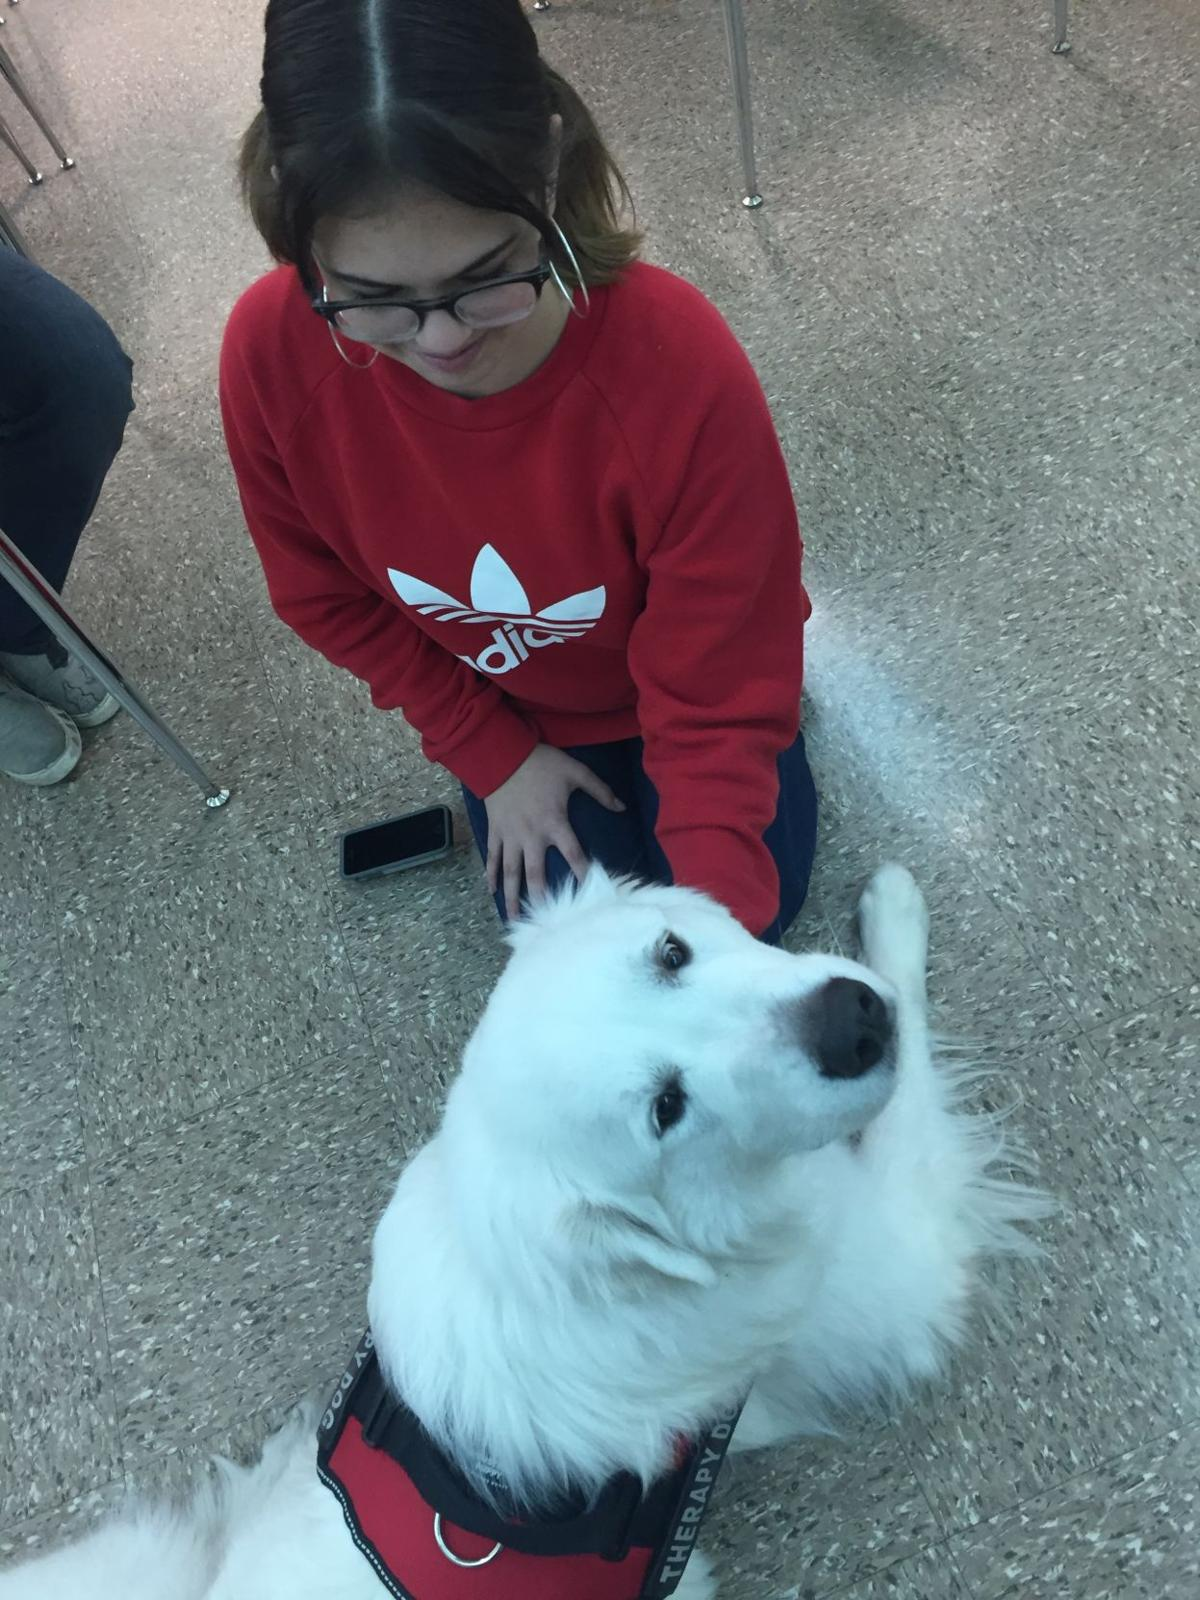 CCISD THERAPY DOG 2